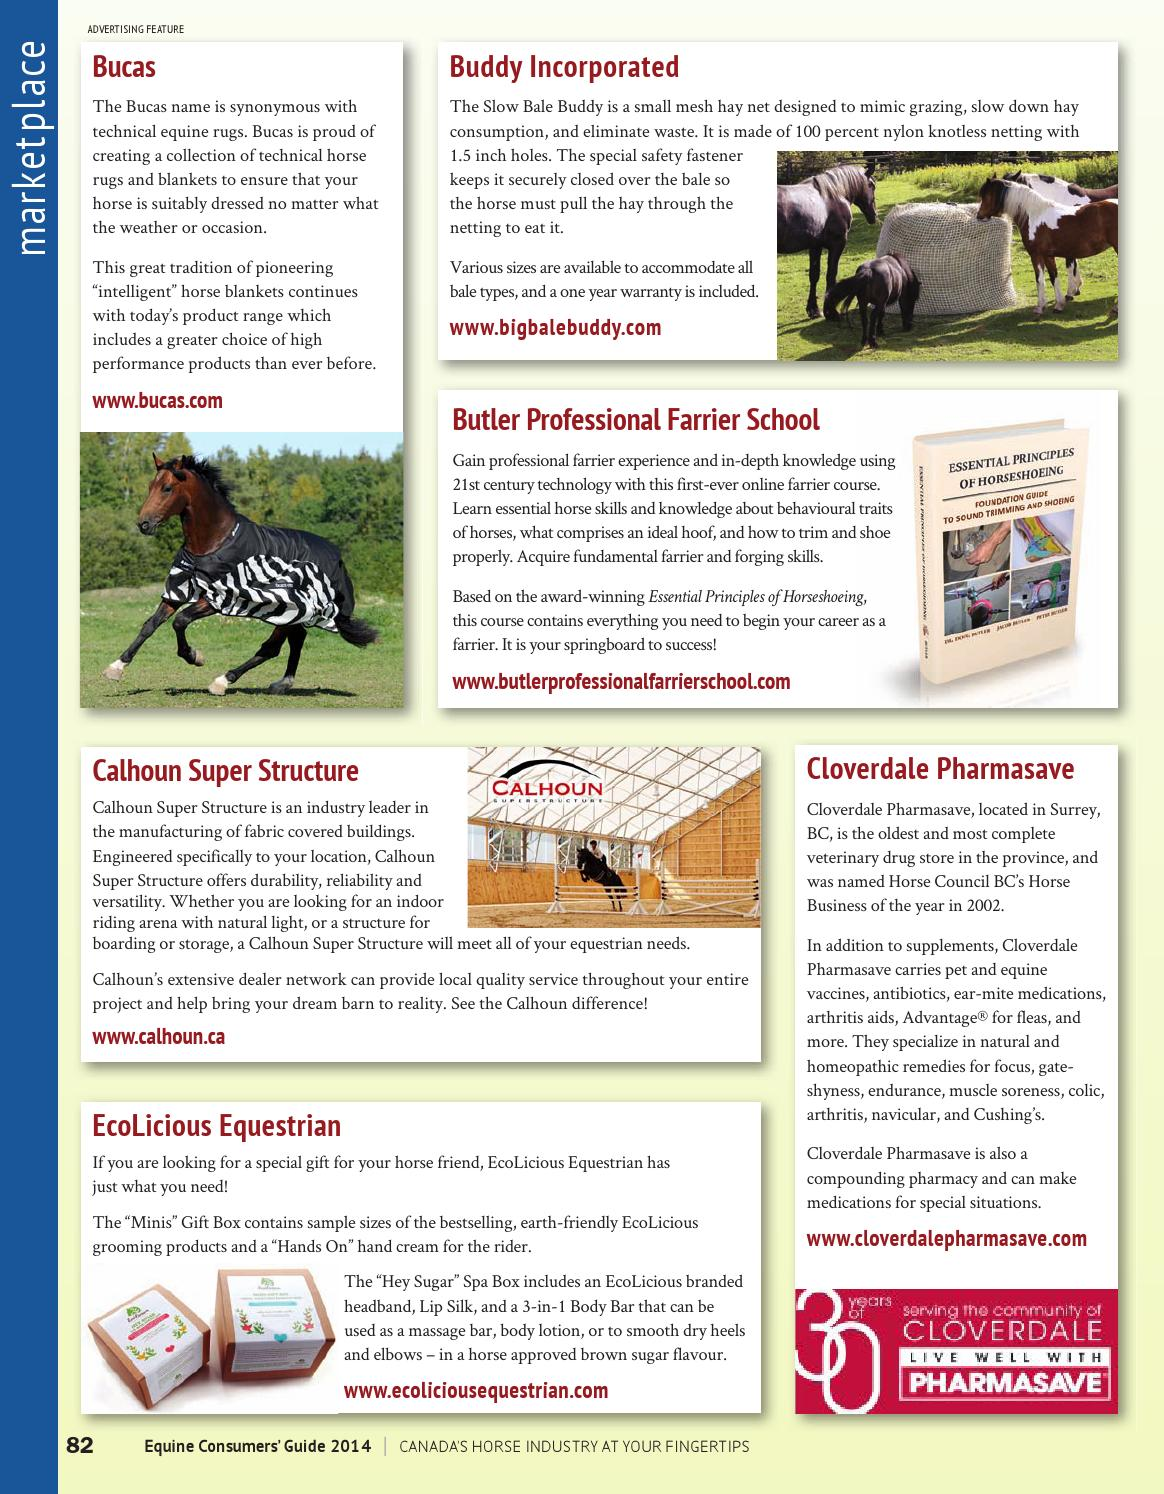 Equine Consumers' Guide 2014 - PREVIEW by Horse Community